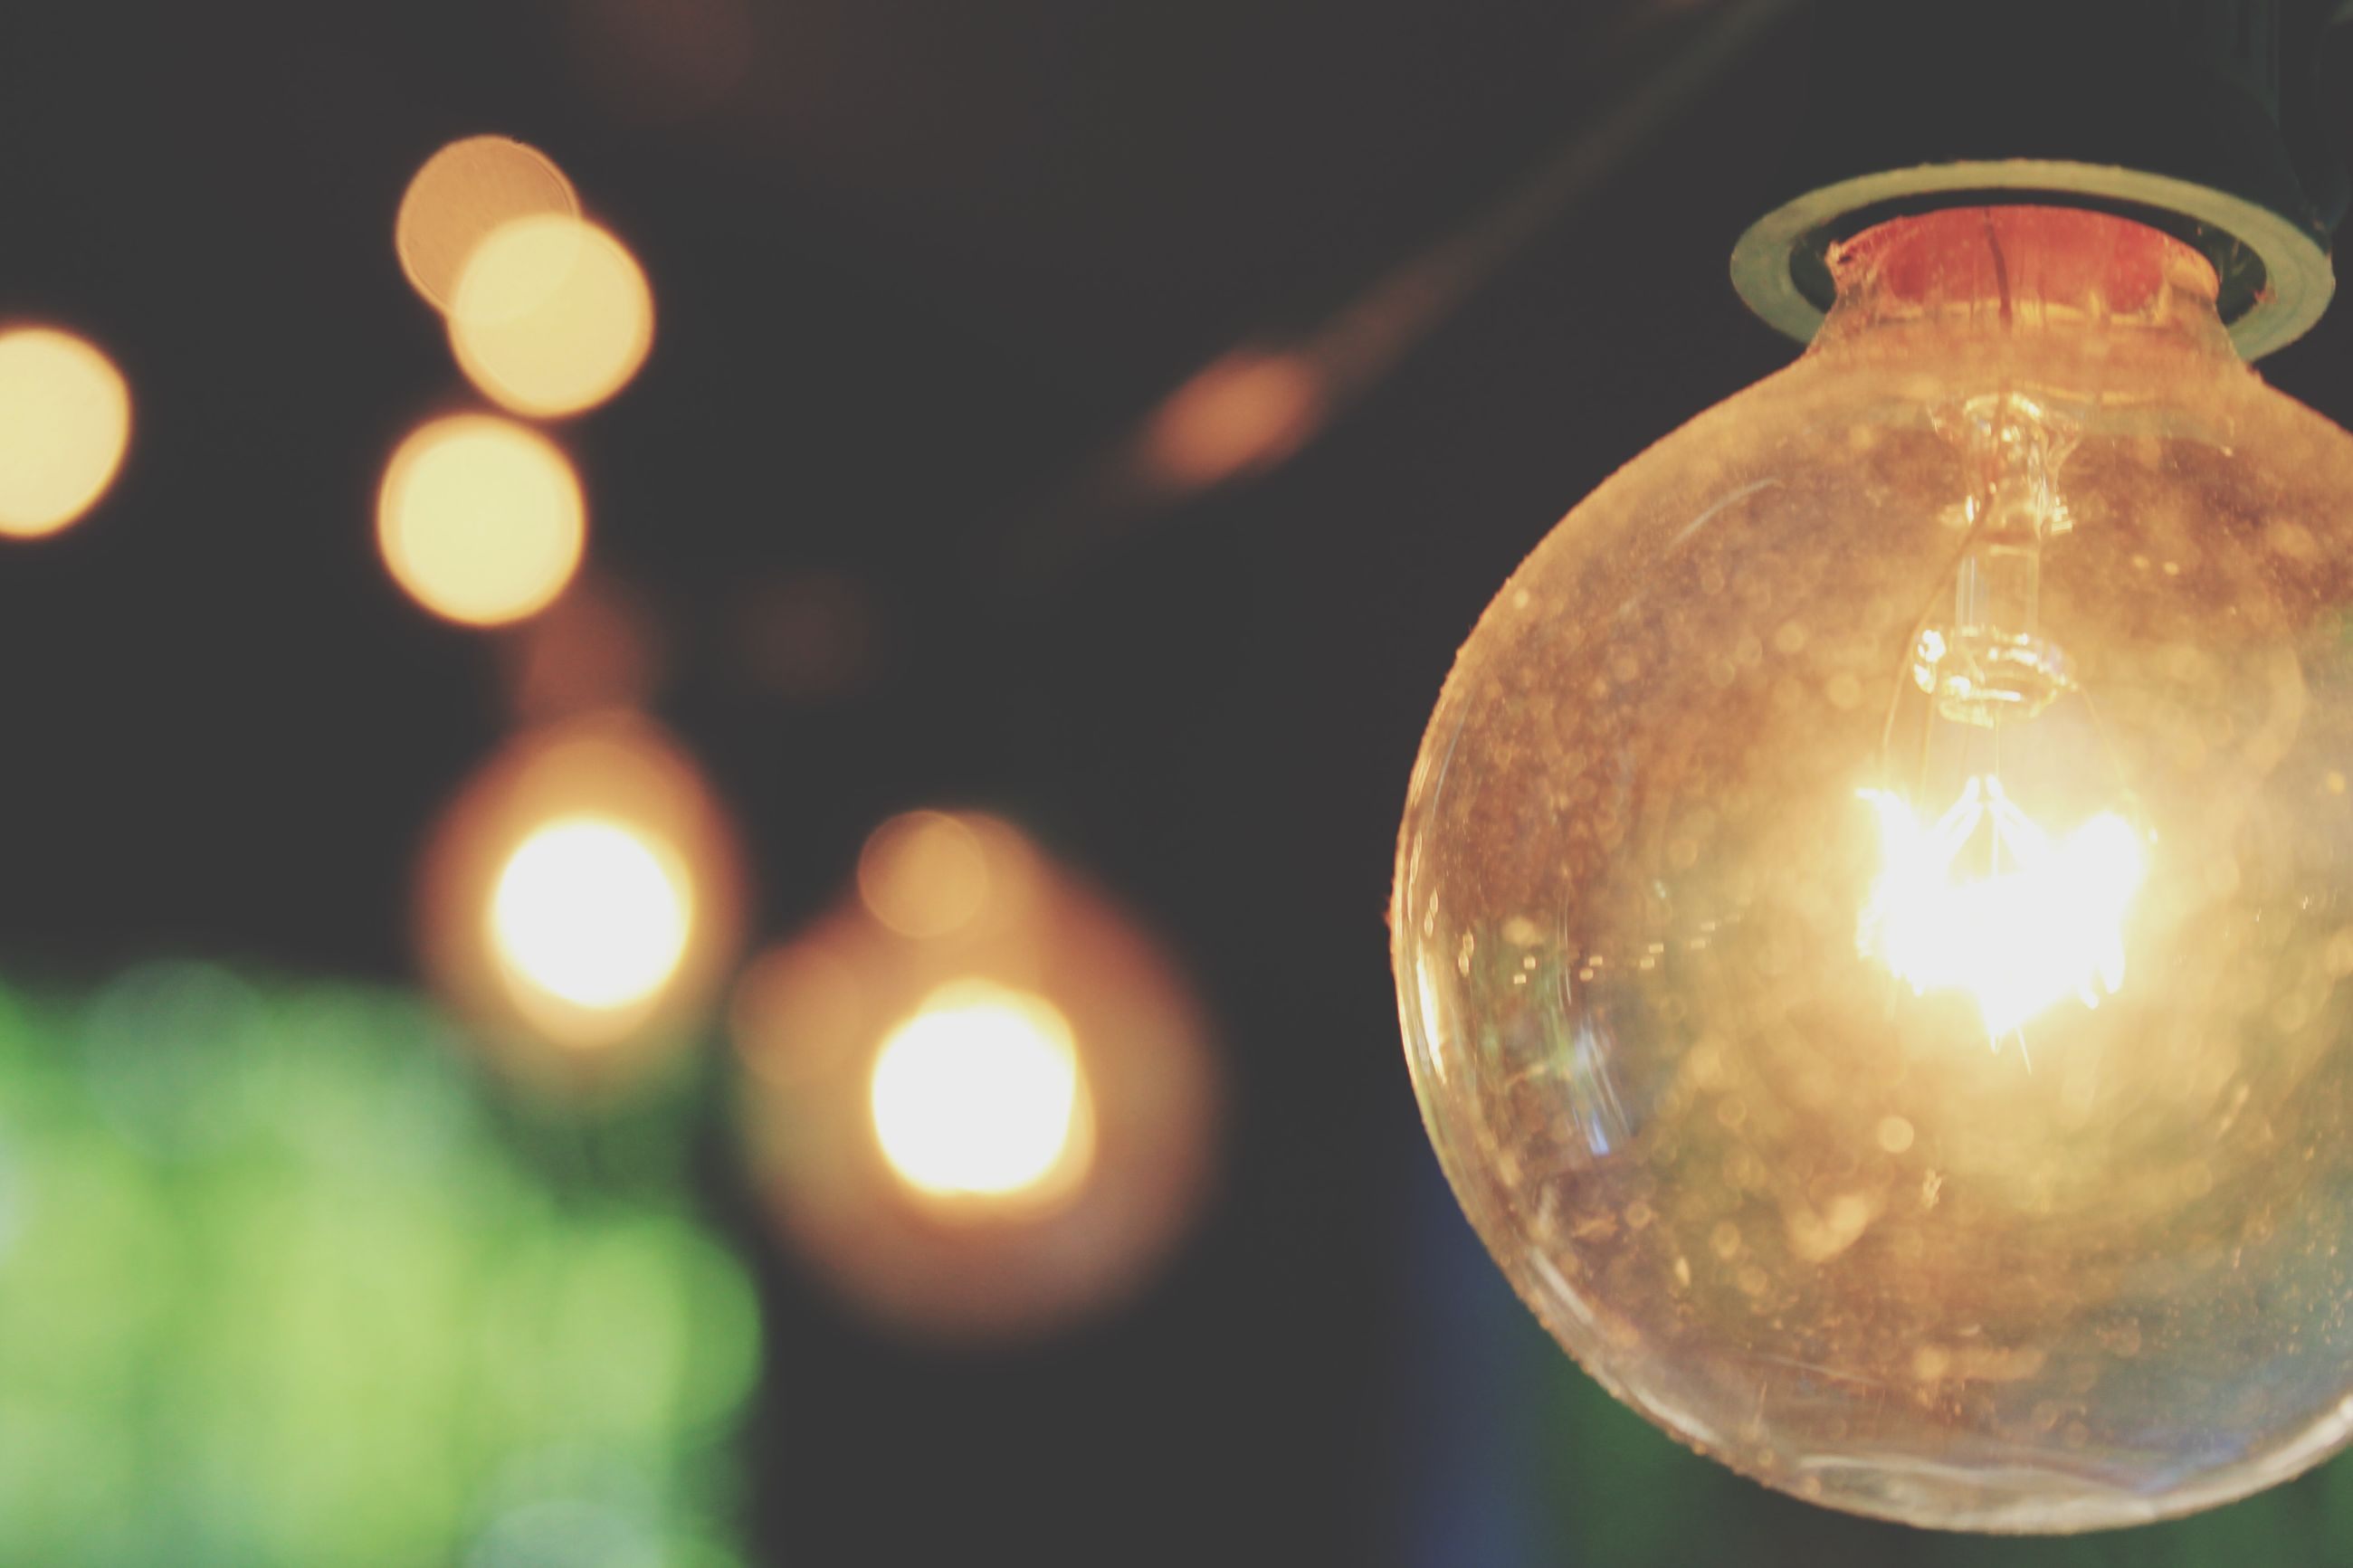 illuminated, lighting equipment, sphere, indoors, light bulb, close-up, decoration, night, hanging, electricity, focus on foreground, glowing, electric light, glass - material, transparent, ceiling, light - natural phenomenon, low angle view, electric lamp, no people